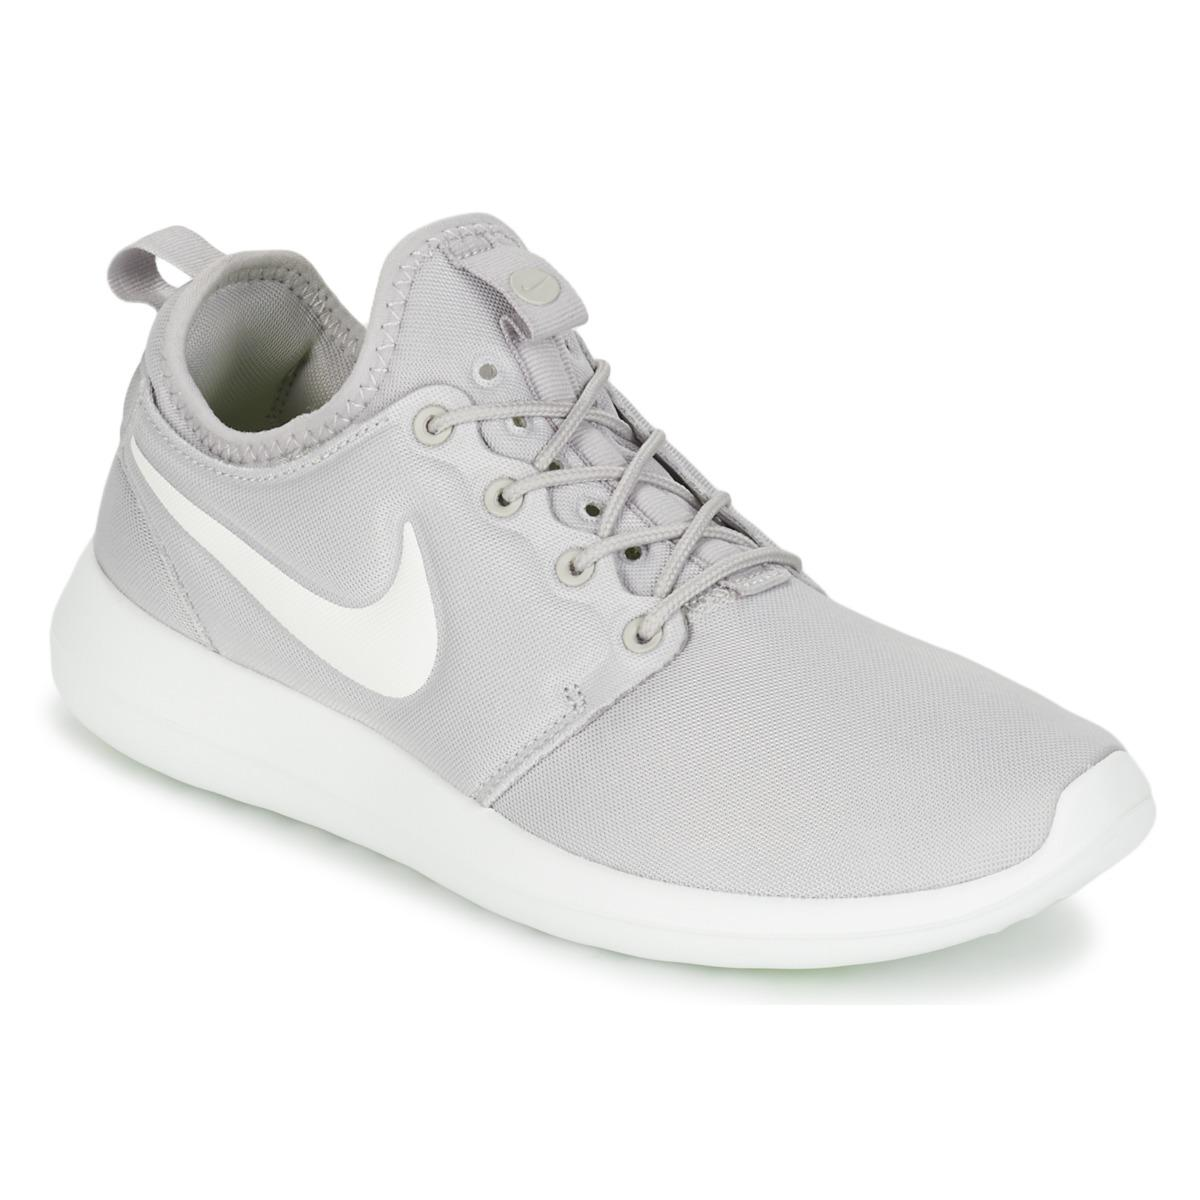 0354374a3c95 Nike Roshe Two W Women s Shoes (trainers) In Grey in Gray - Lyst